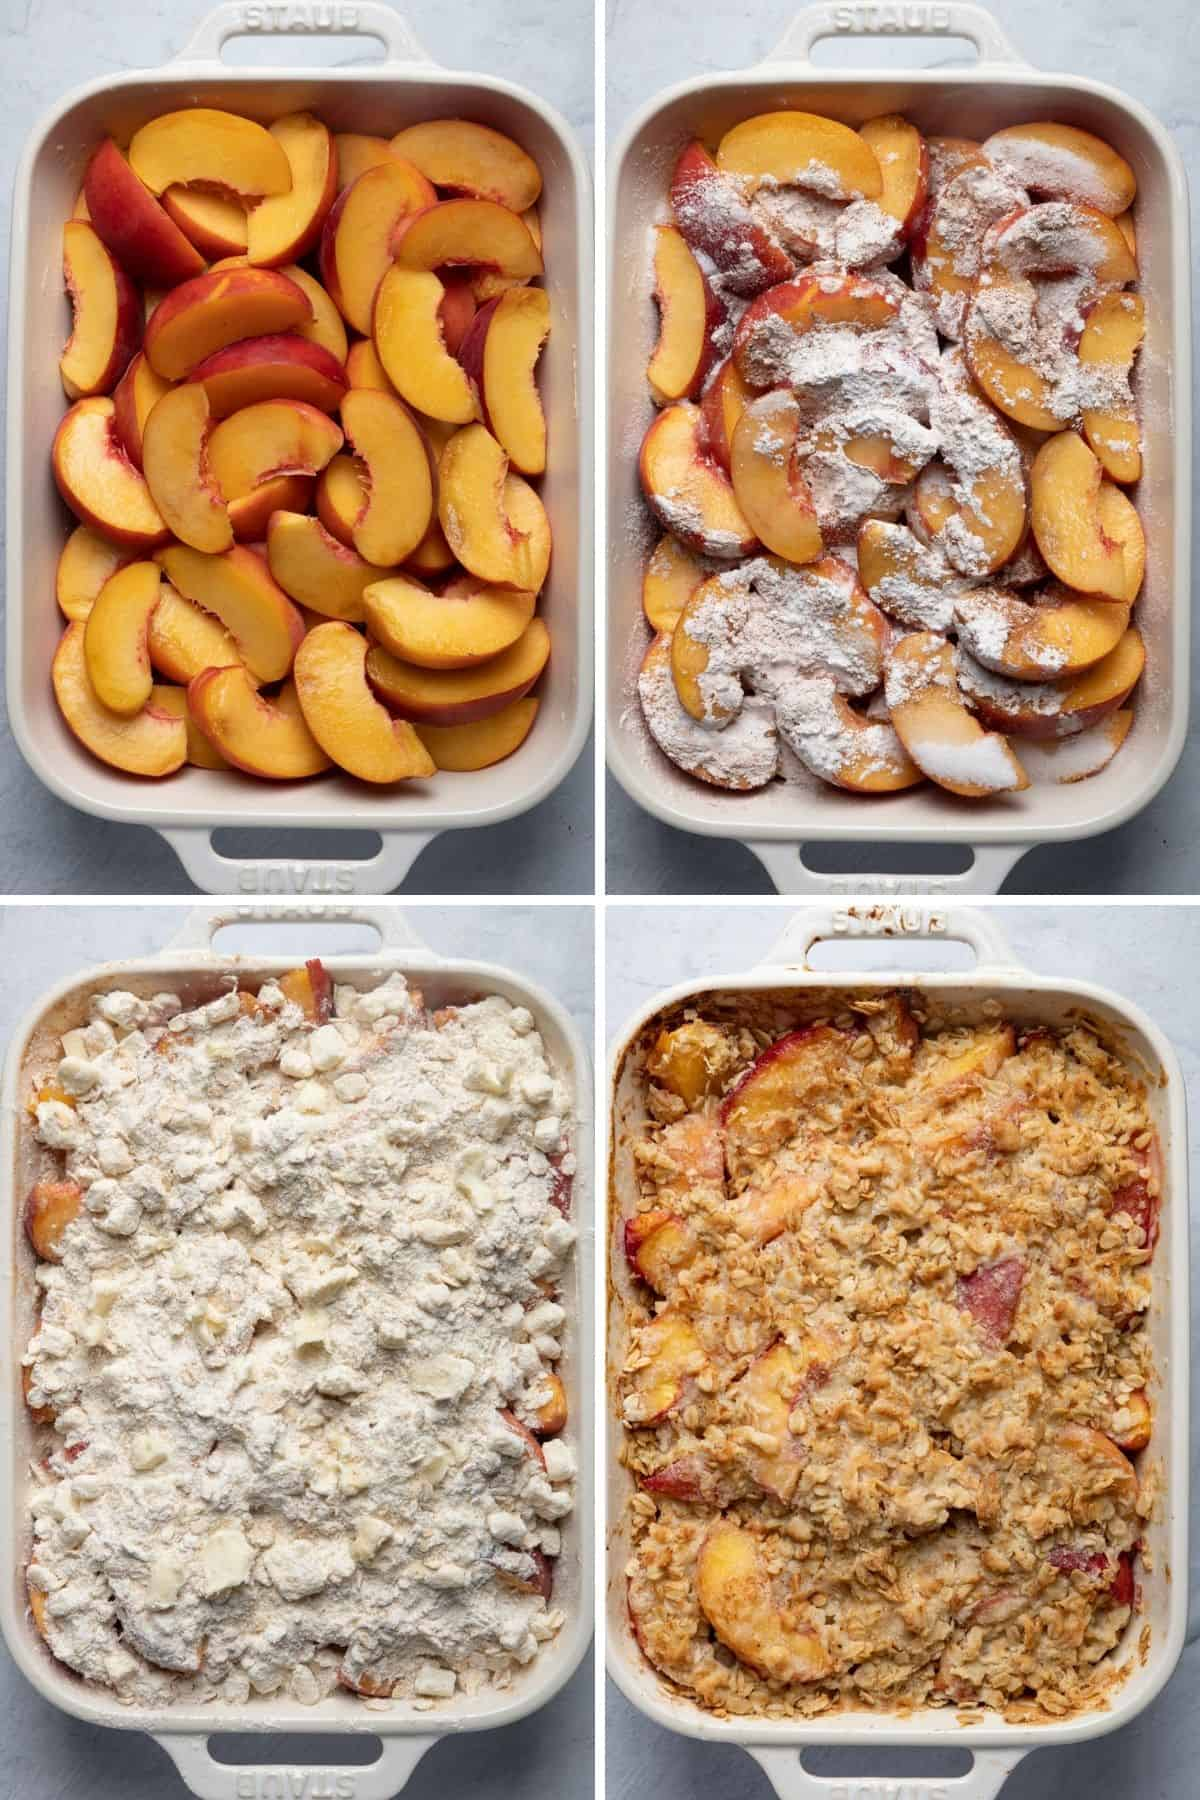 4 image collage to show the peaches in baking dish, then tossed with sugar, lemon juice and cornstarch, then with crisp on top, then baked